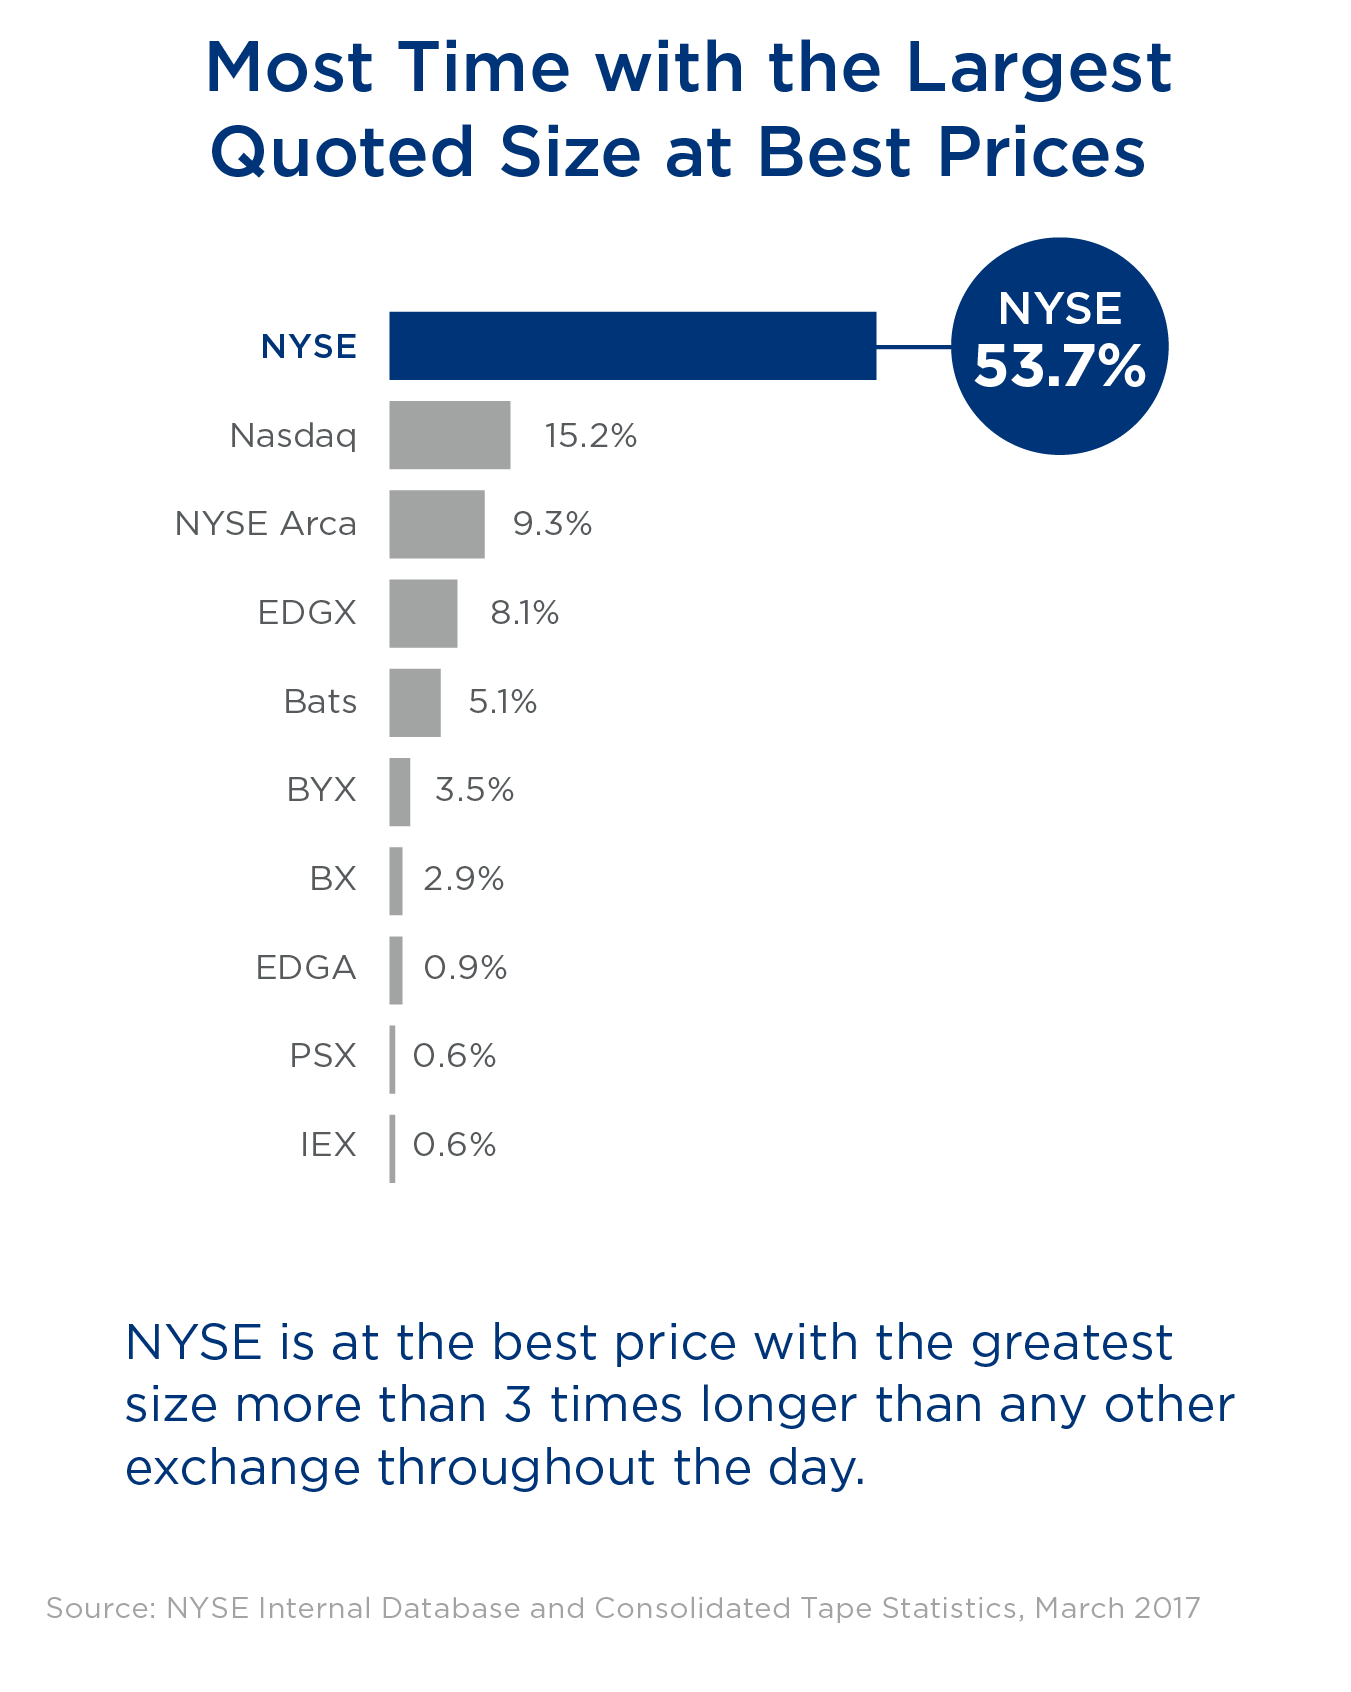 MOST TIME WITH THE LARGEST QUOTED SIZE AT BEST PRICES: NYSE is at the best price with the greatest size more than 3 times longer than any other exchange throughout the day